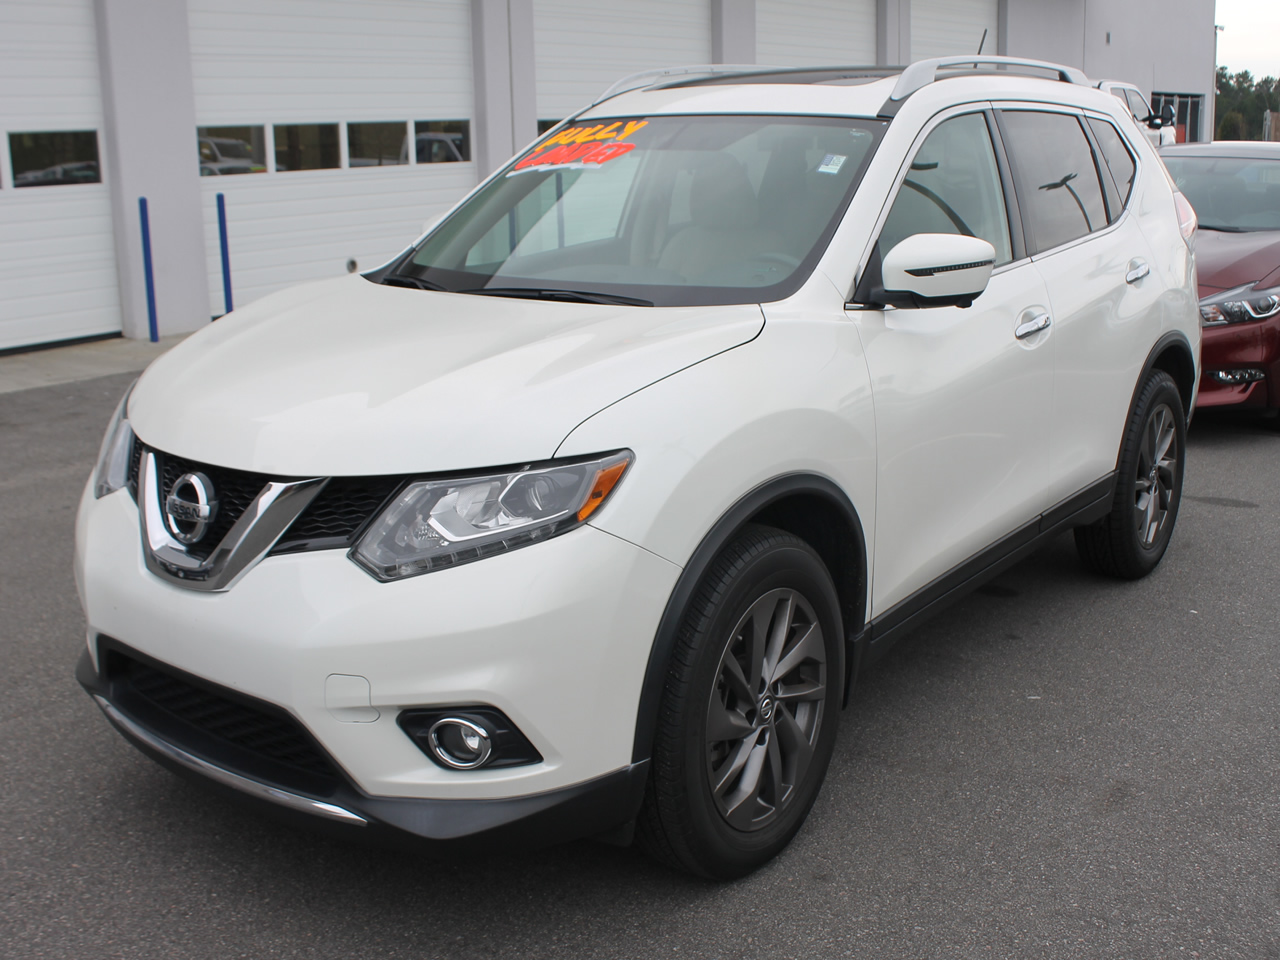 Nissan Of Sumter >> USED 2016 NISSAN ROGUE SL VIN 5N1AT2MT7GC738961 - DICK ...